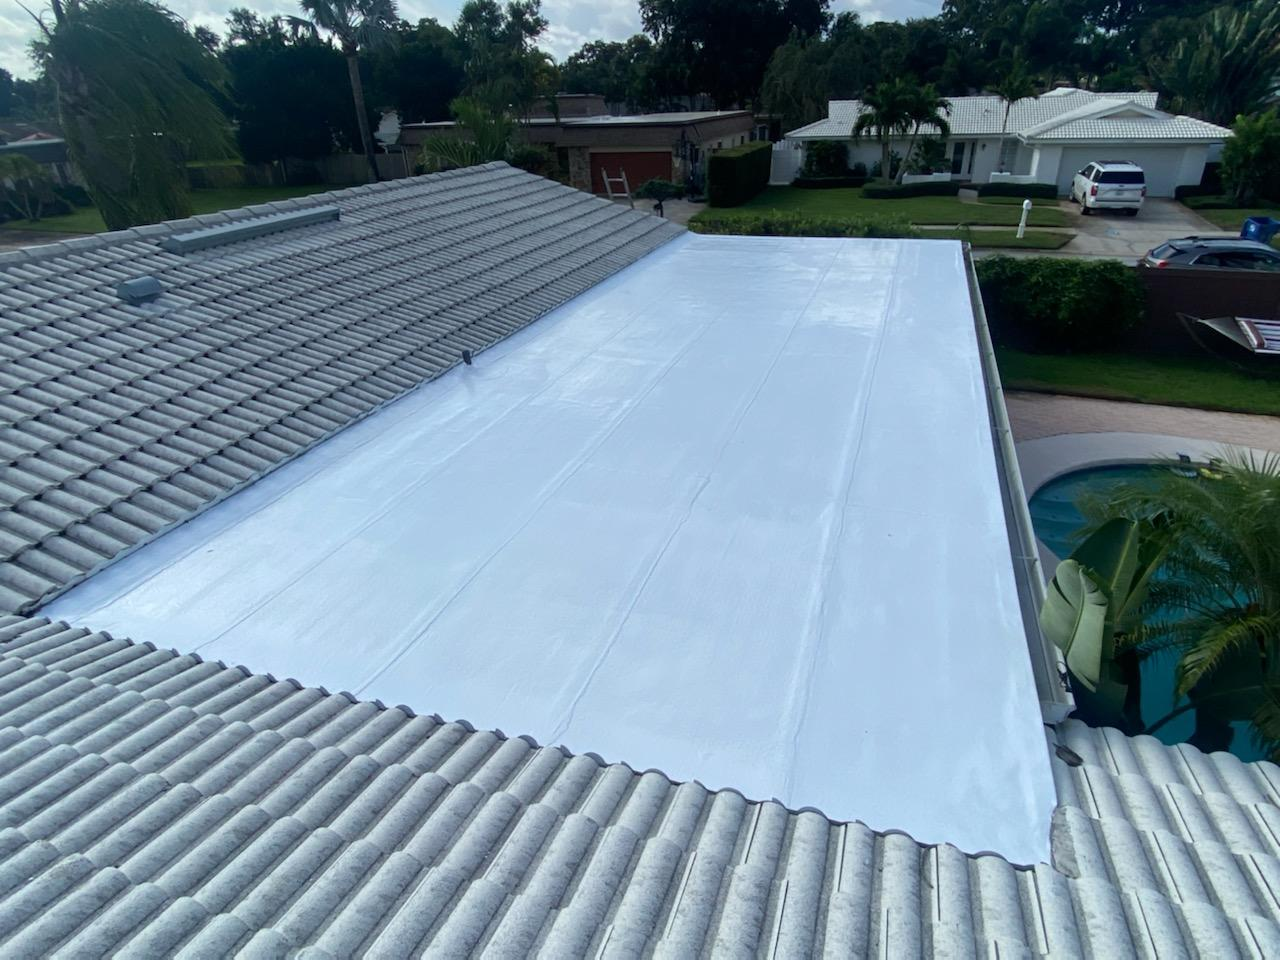 Flat Roof- Silicone Coating - After Photo